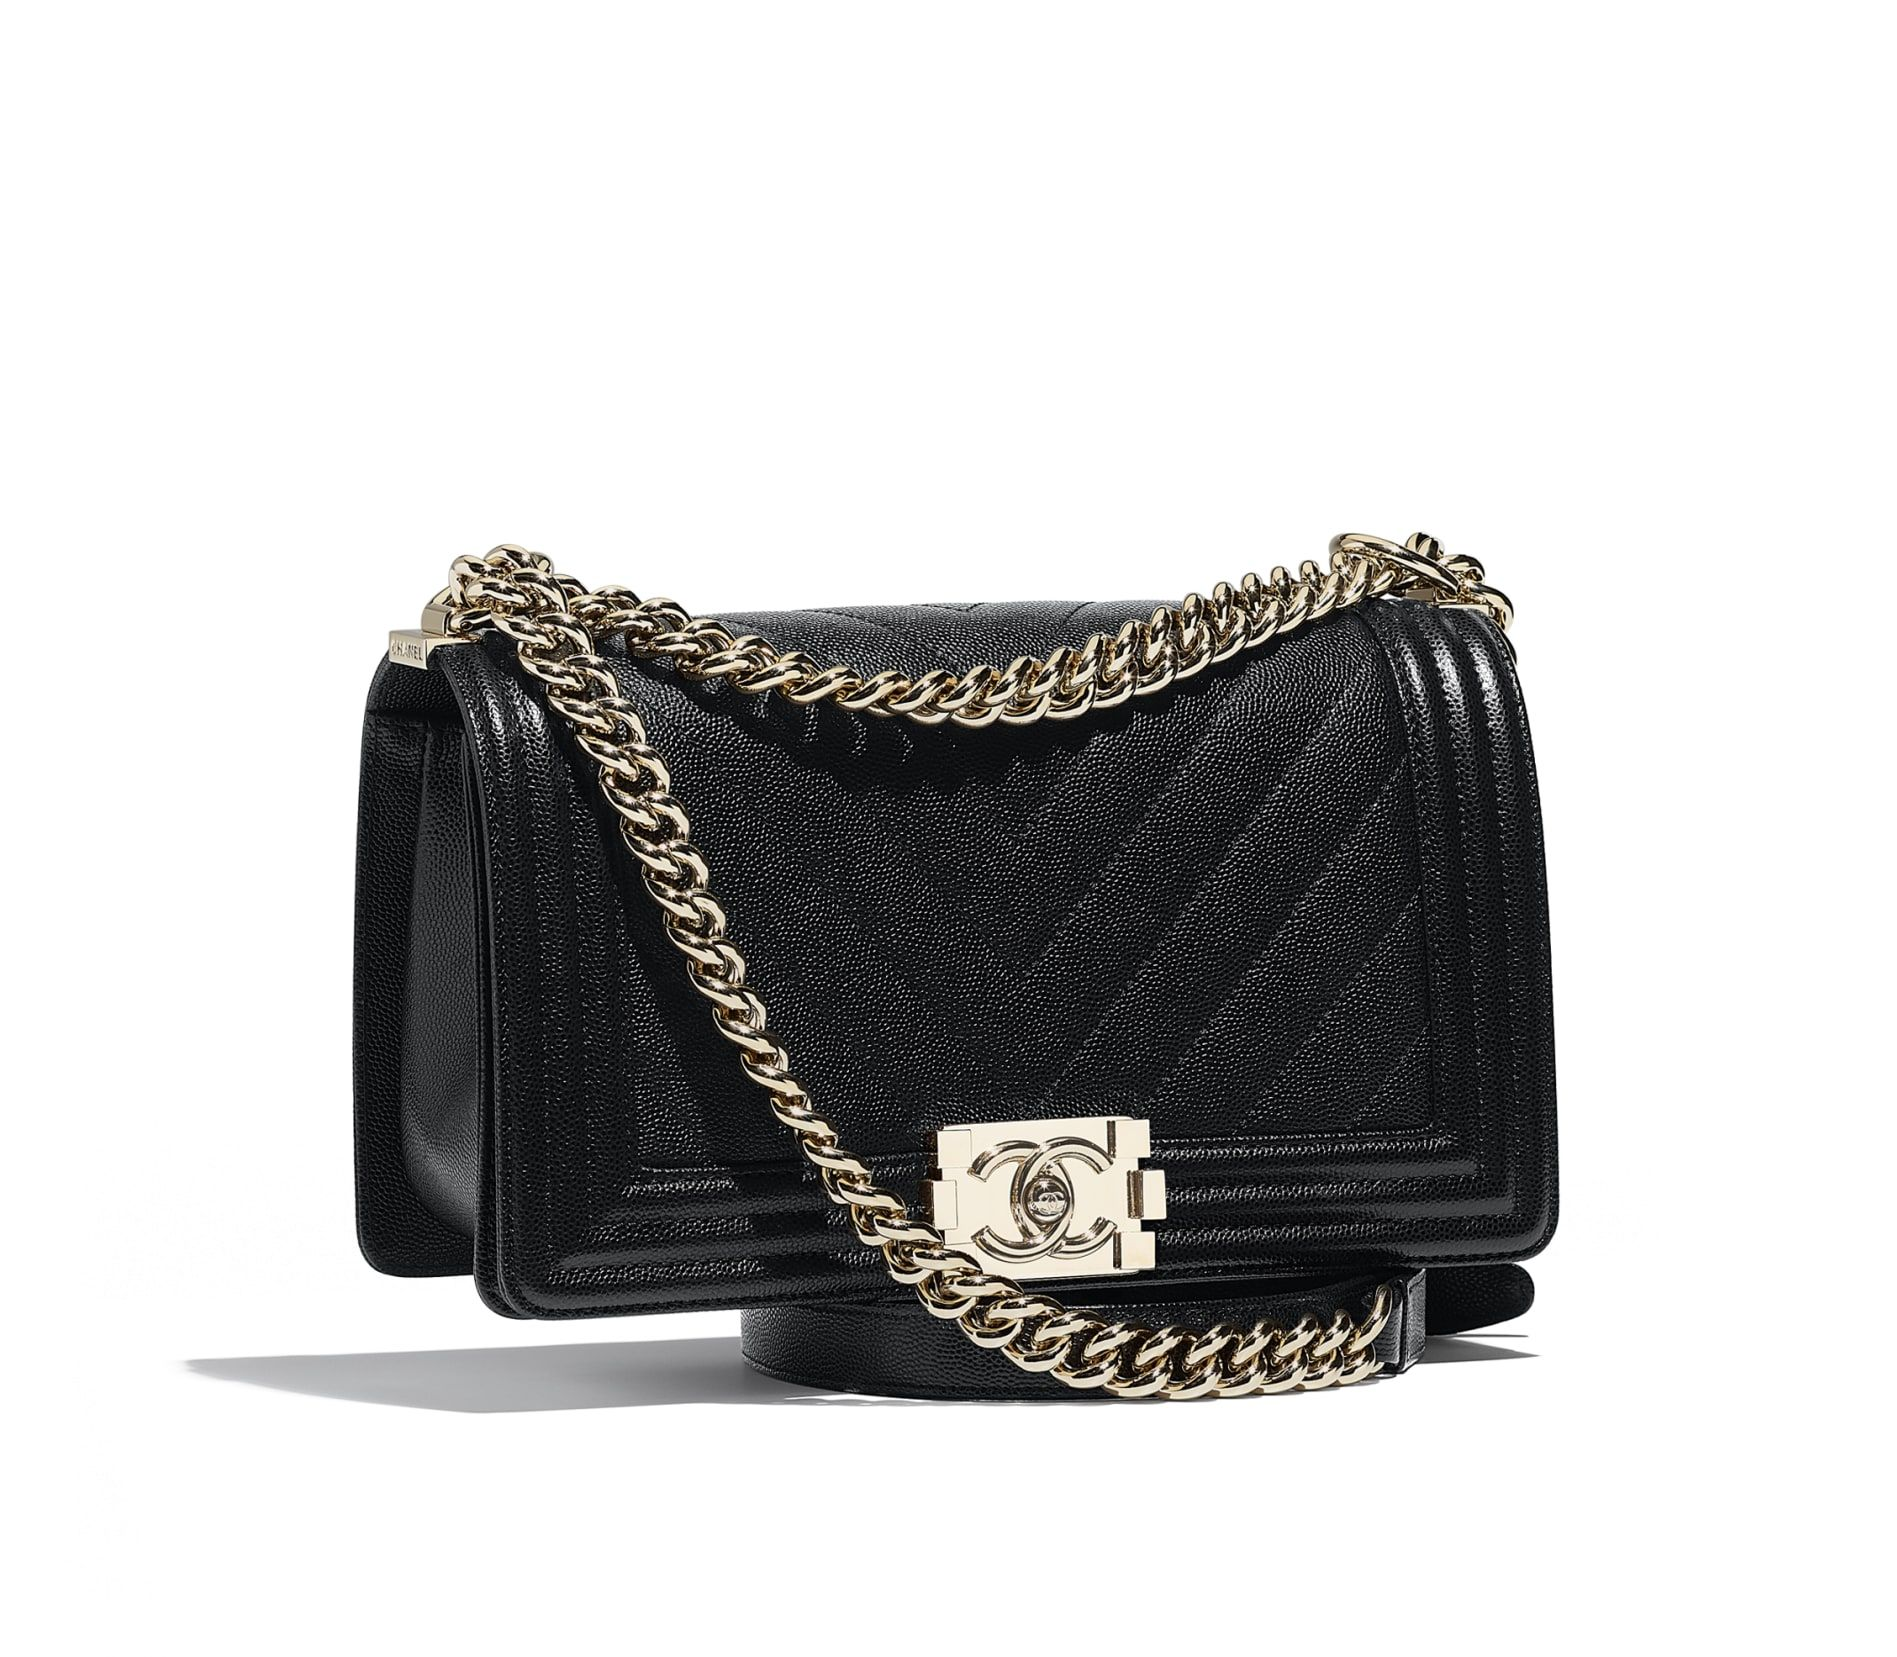 87e88f72e475 BOY CHANEL Handbag, grained calfskin & gold-tone metal, black - CHANEL BOY  CHANEL Handbag Grained calfskin & gold-tone metal Black 14.5 × 25 × 8 cmin  ...